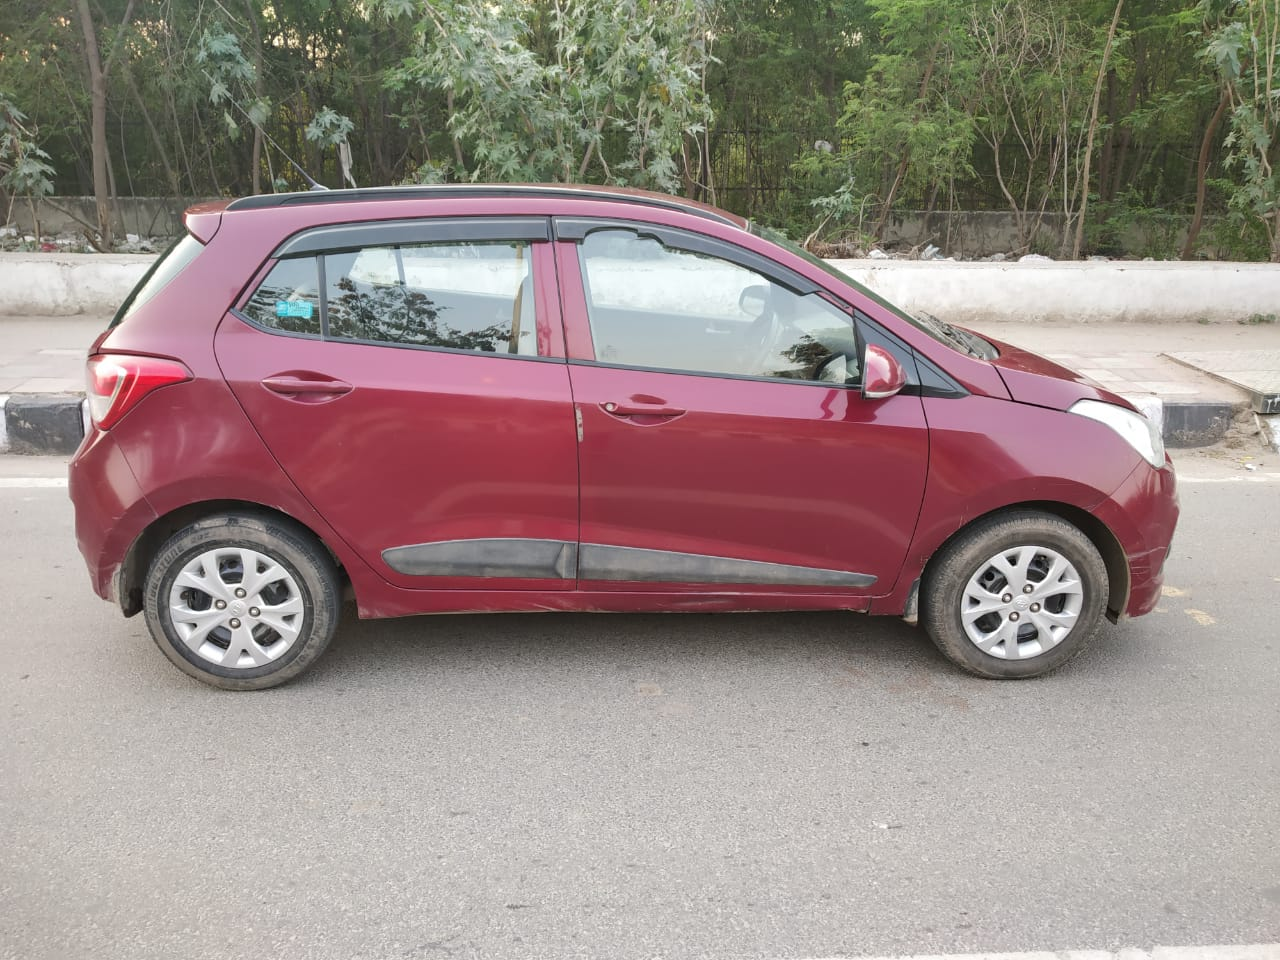 2015 Used HYUNDAI GRAND I10 SPORTZ 1.1 CRDI